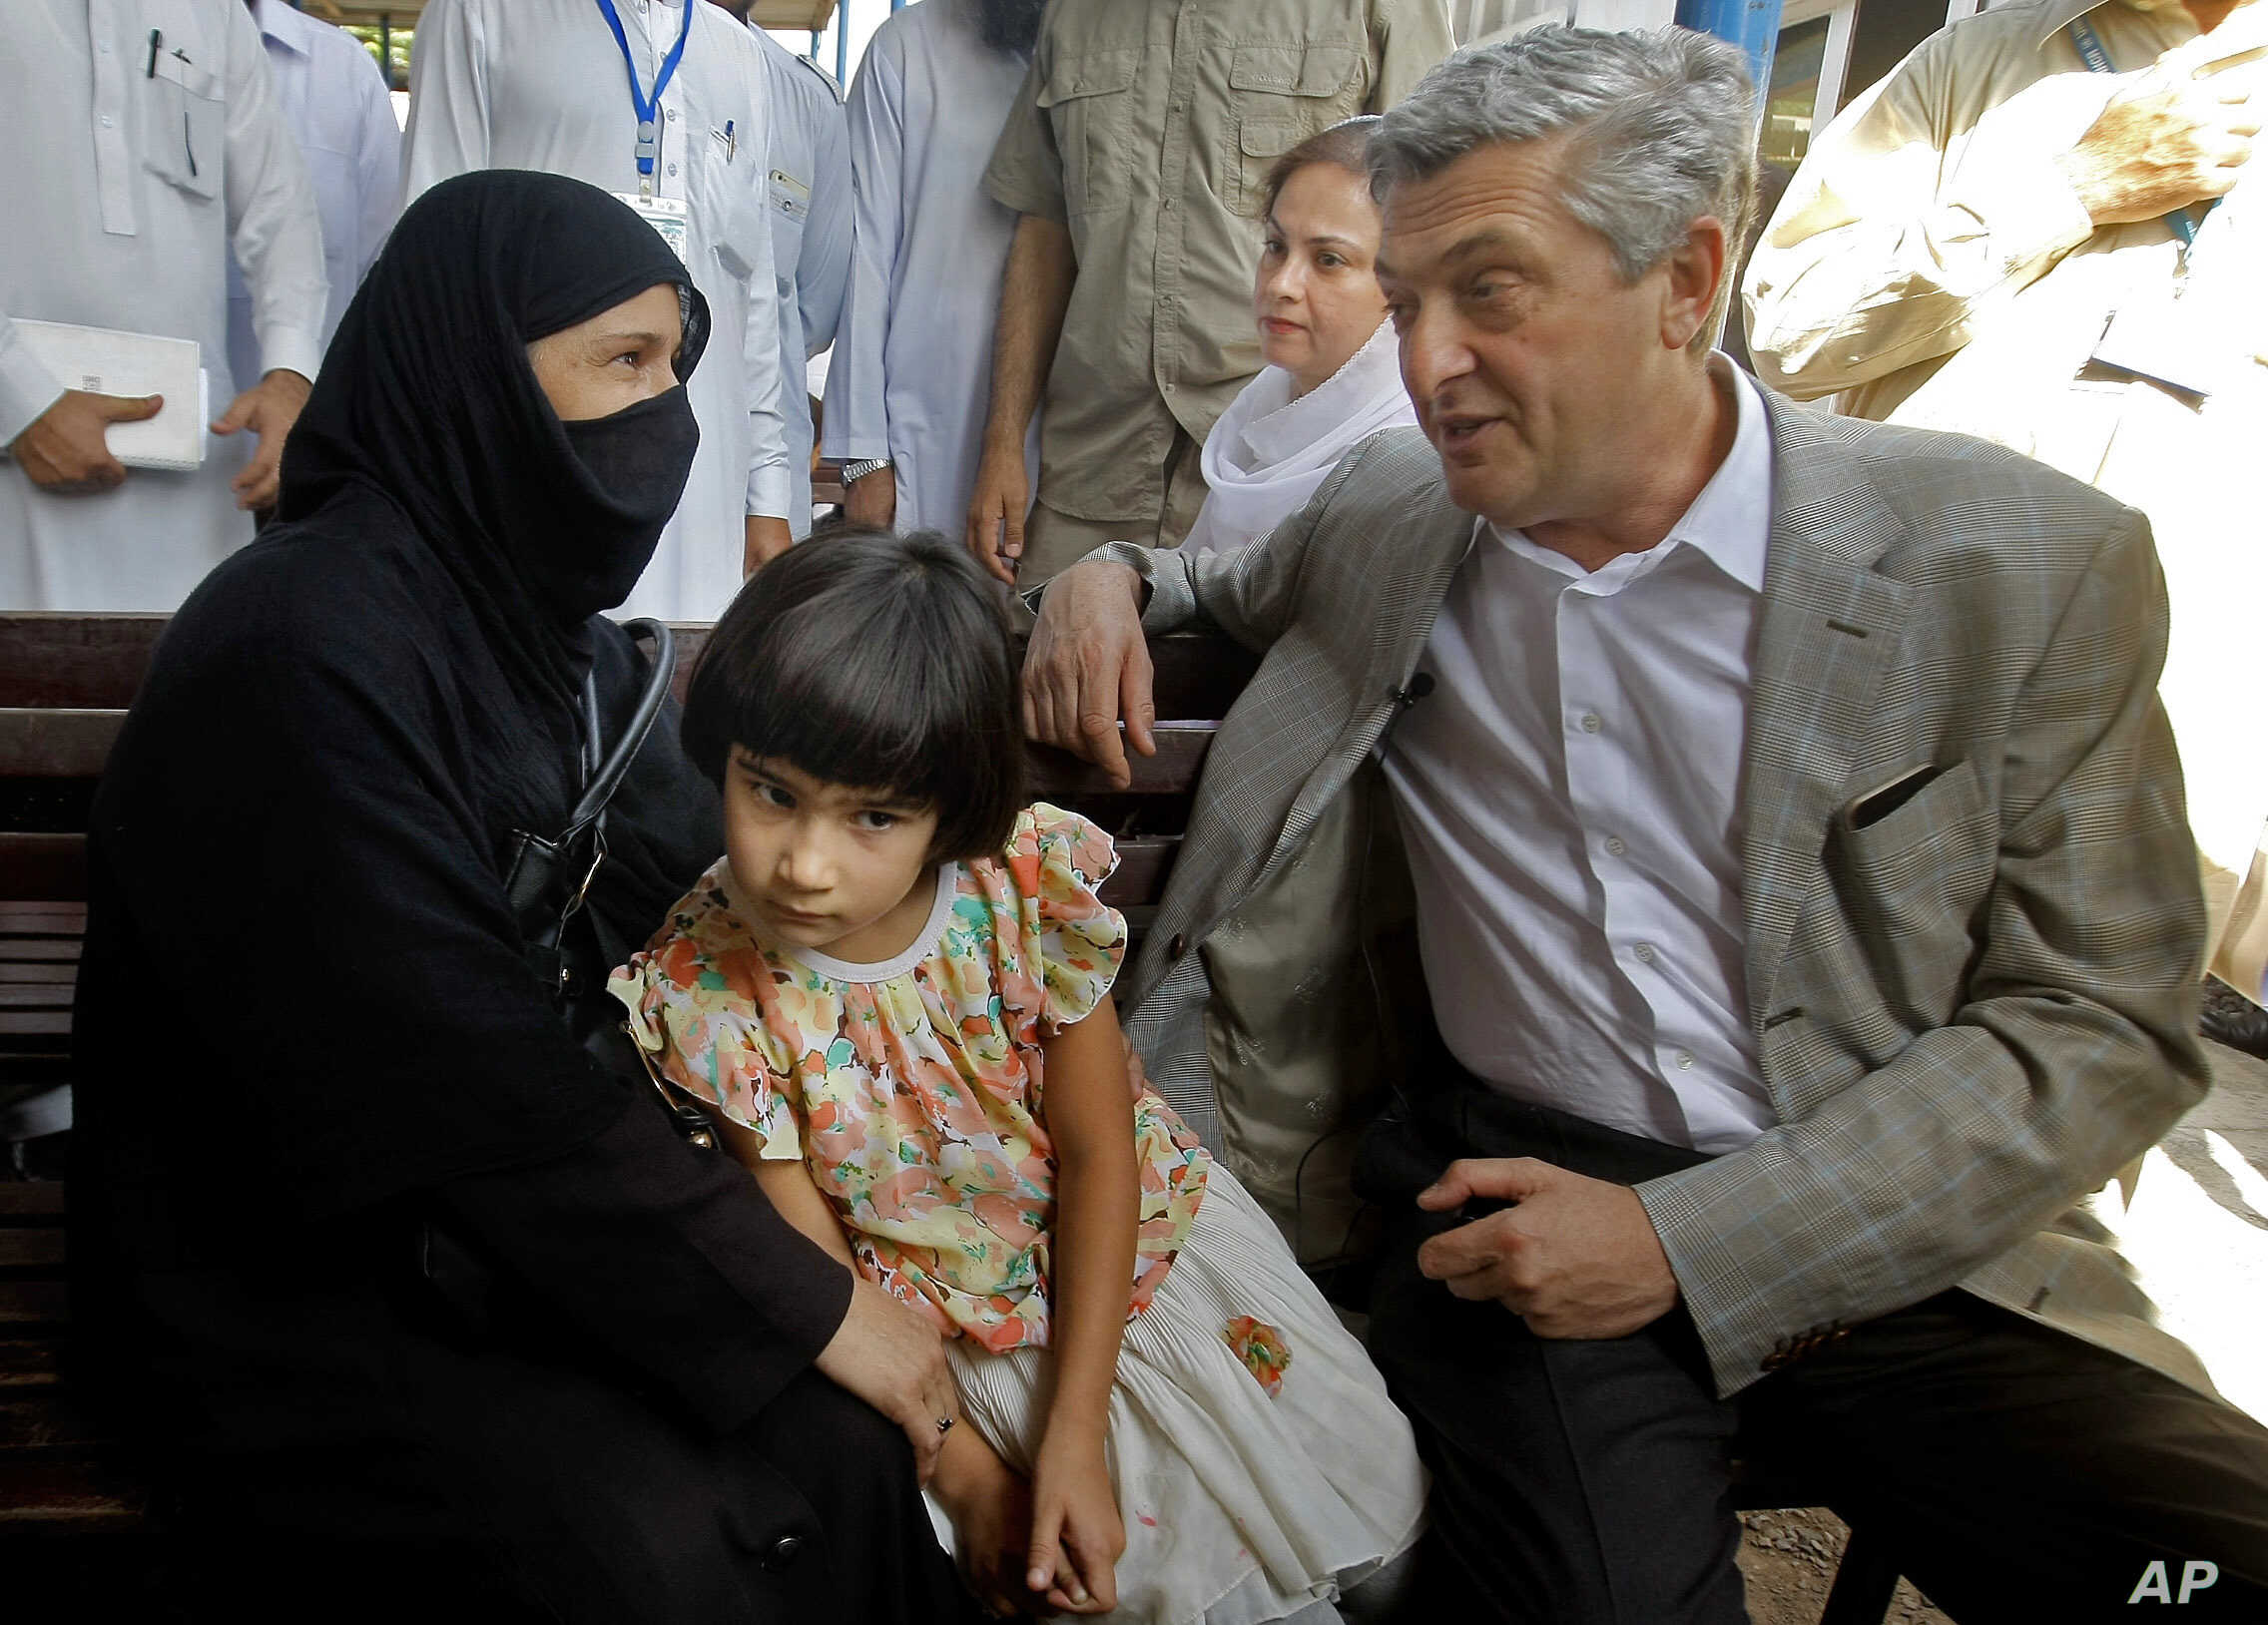 U.N. High Commissioner for Refugees Filippo Grandi talks to an Afghan refugee woman during his visit to the UNHCR's Repatriation Center in Peshawar, Pakistan, June 23, 2016.